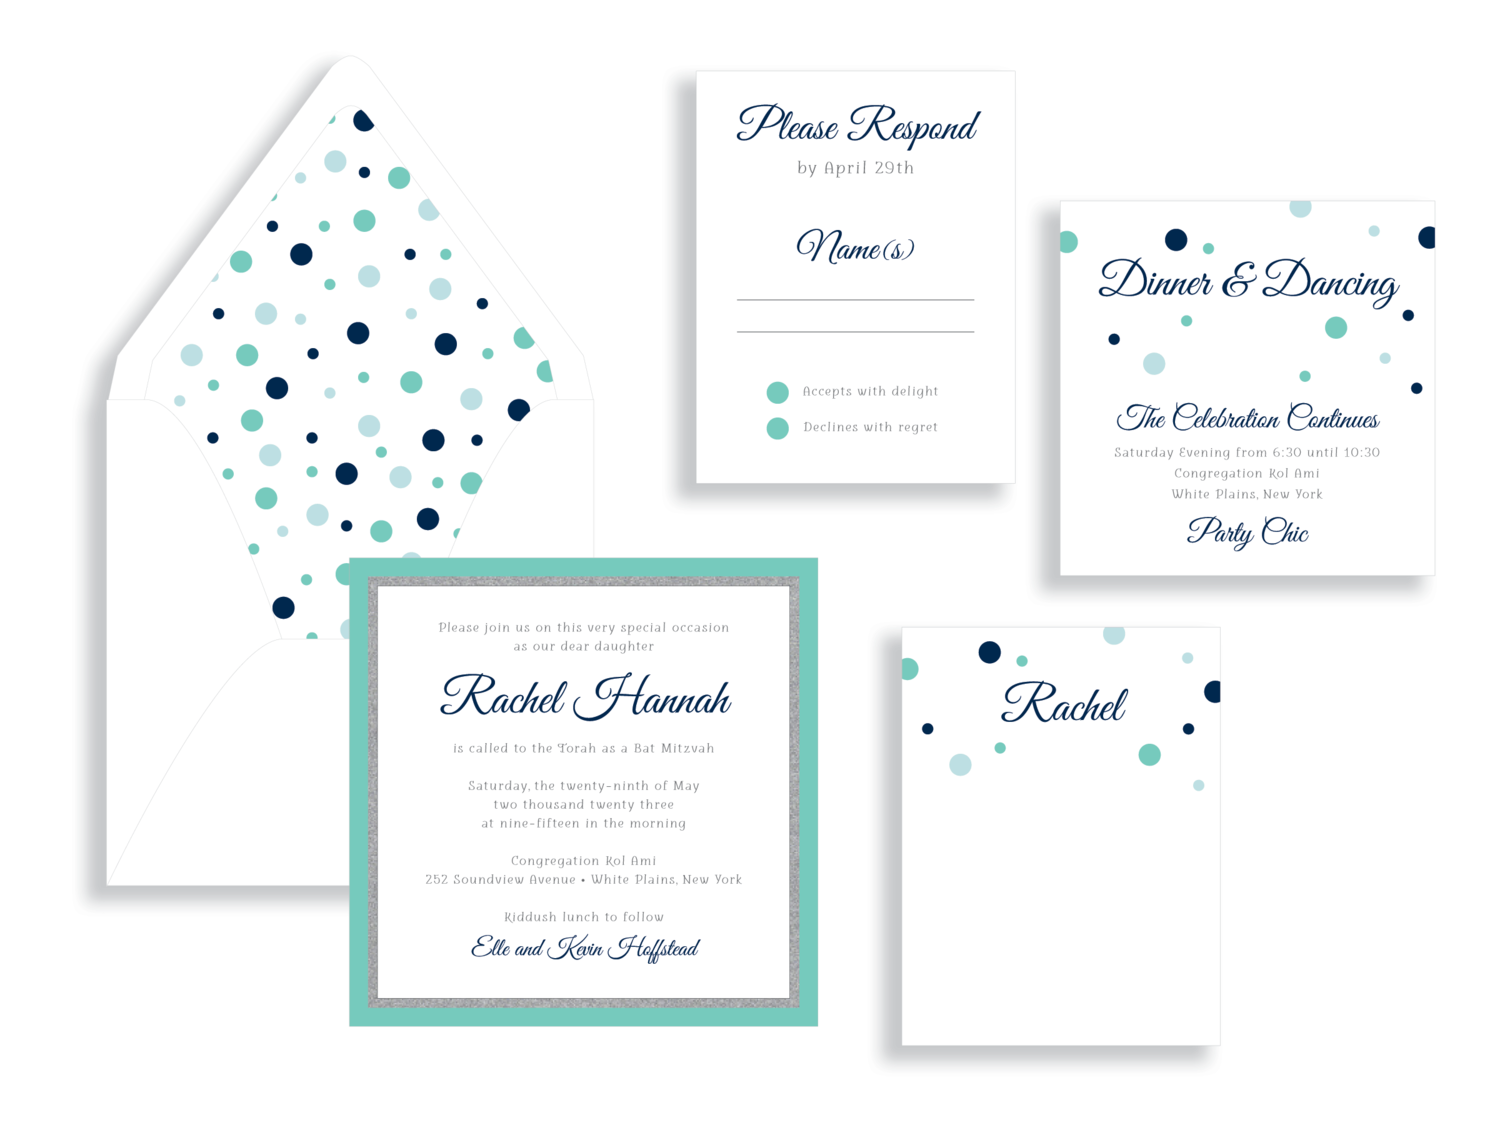 Rachel navy and aqua poka dot bat mitzvah invitation in the Washington DC Metro area from Staccato.  Customize colors and layers!